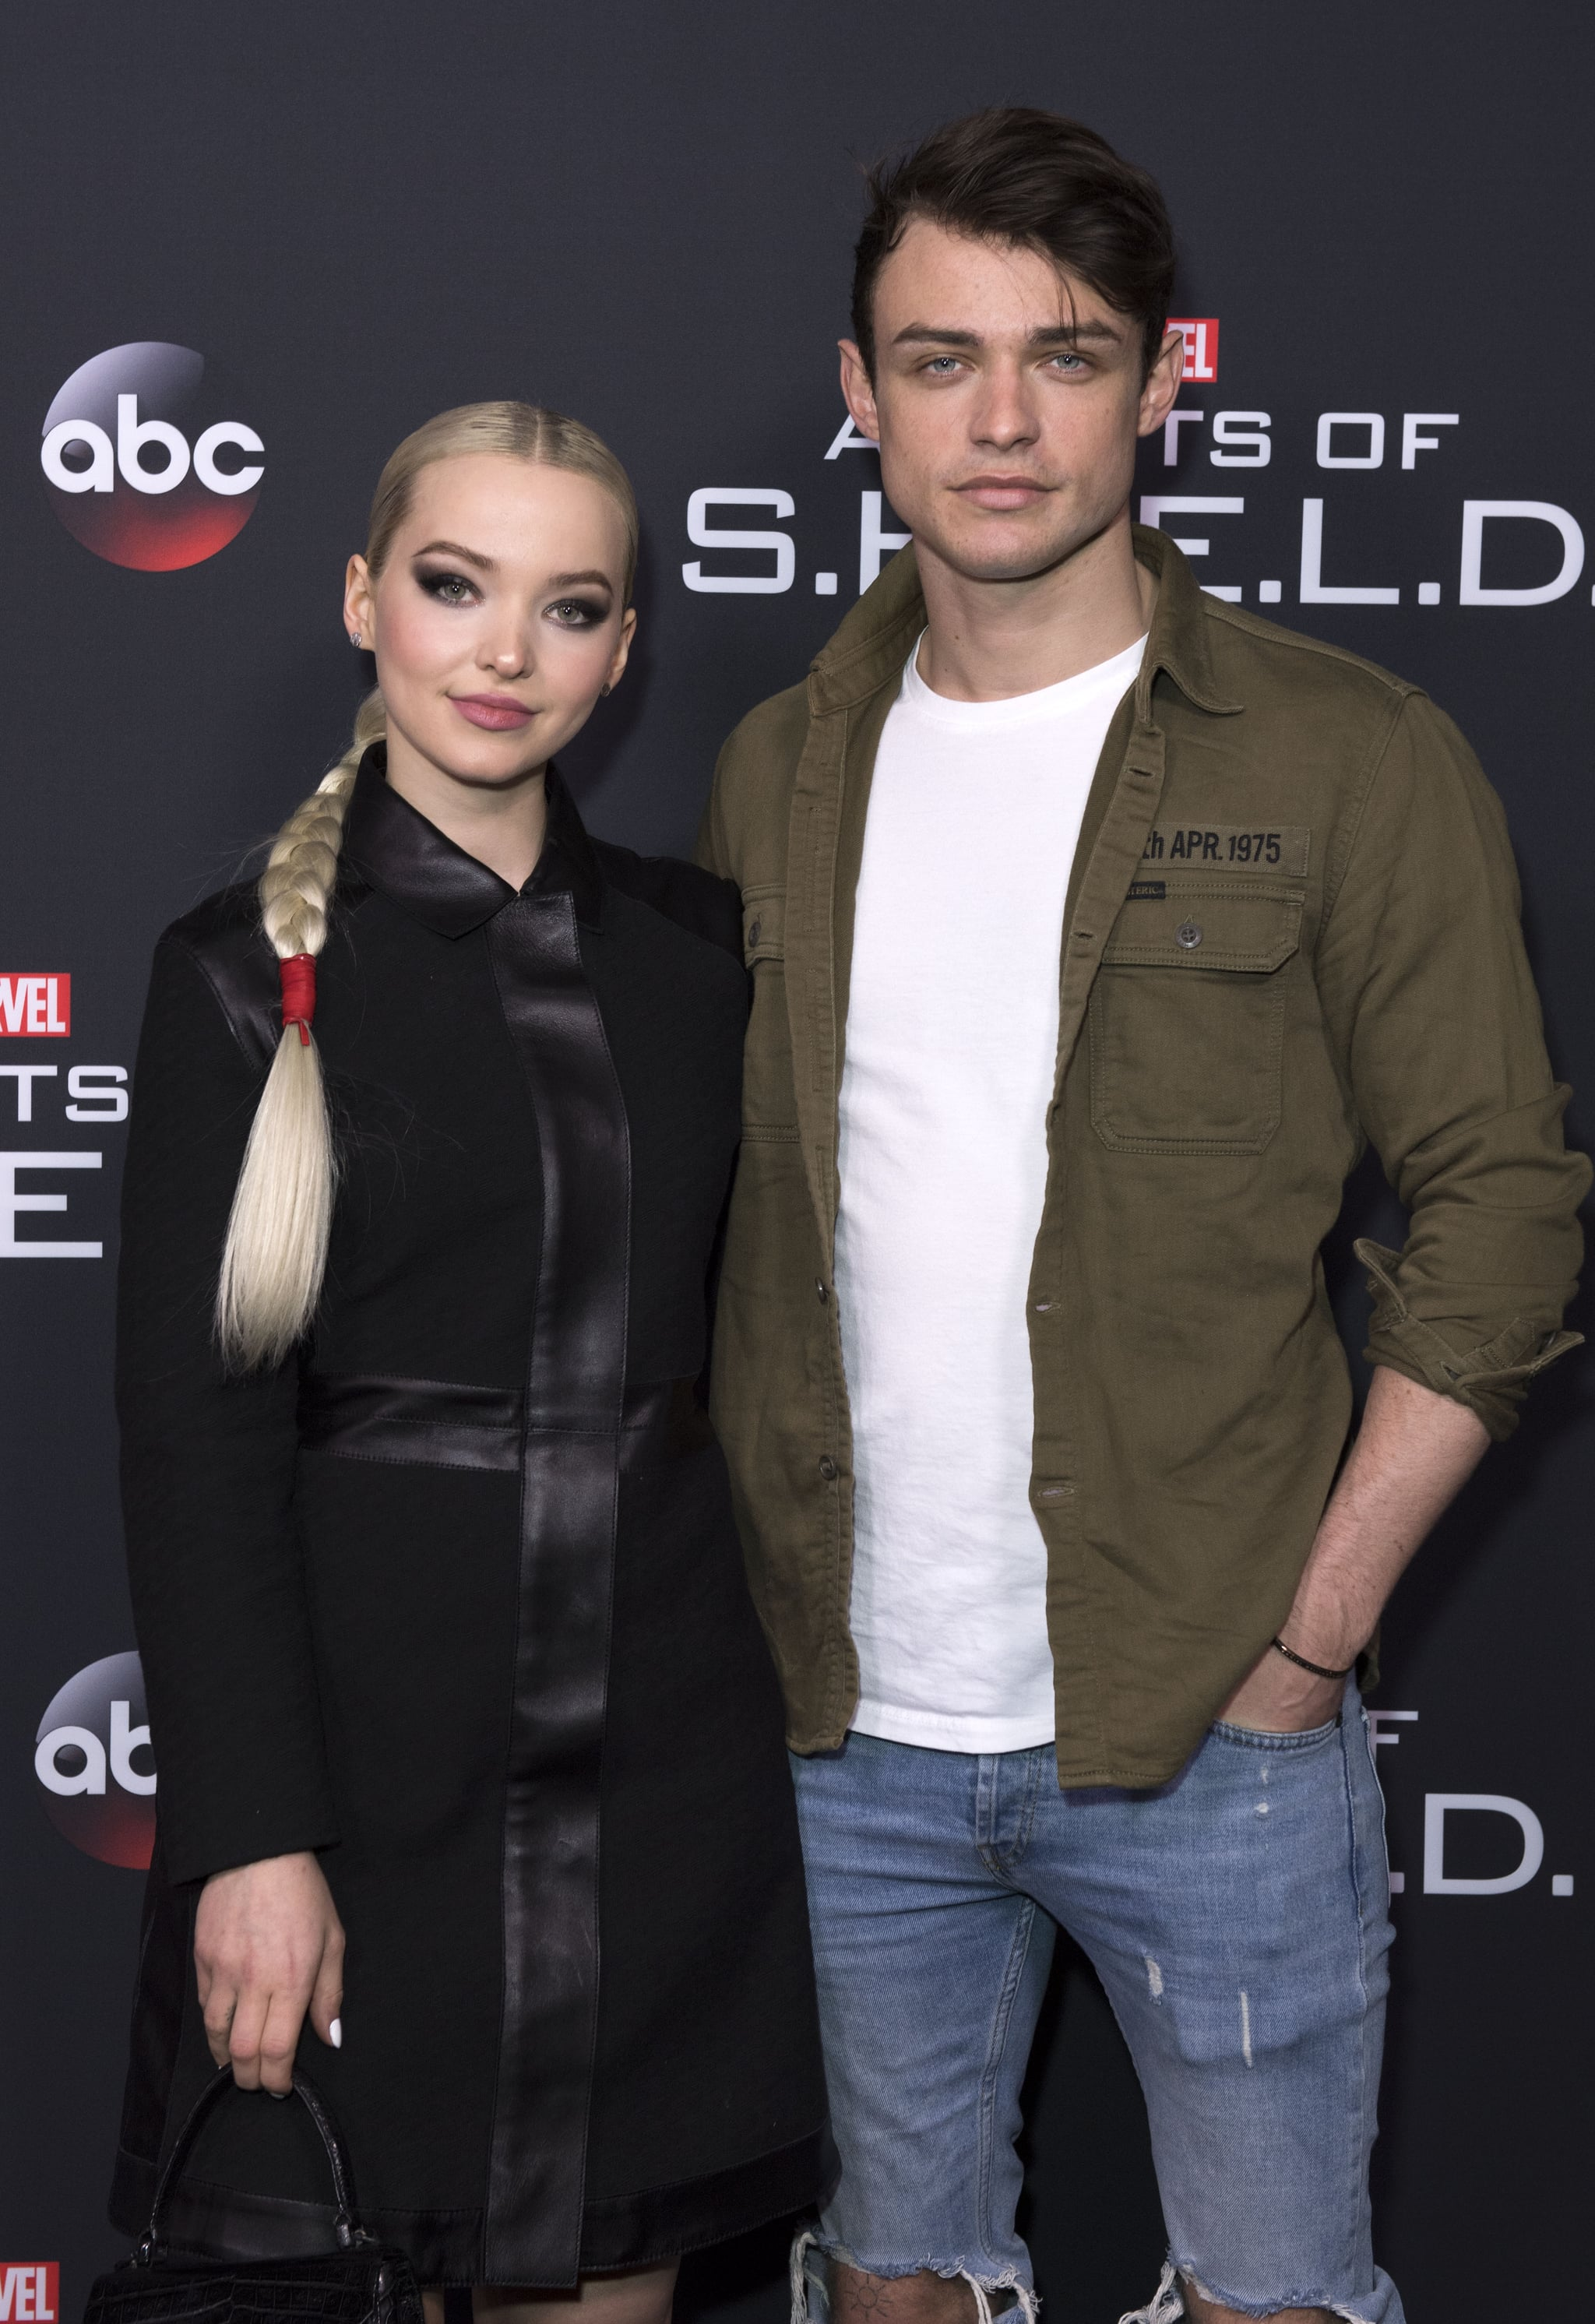 Actors Dove Cameron (L) and Thomas Doherty attend Marvels Agents of S.H.I.E.L.D. 100th Episode Celebration in Hollywood, California, on February 24, 2018.  / AFP PHOTO / VALERIE MACON        (Photo credit should read VALERIE MACON/AFP/Getty Images)